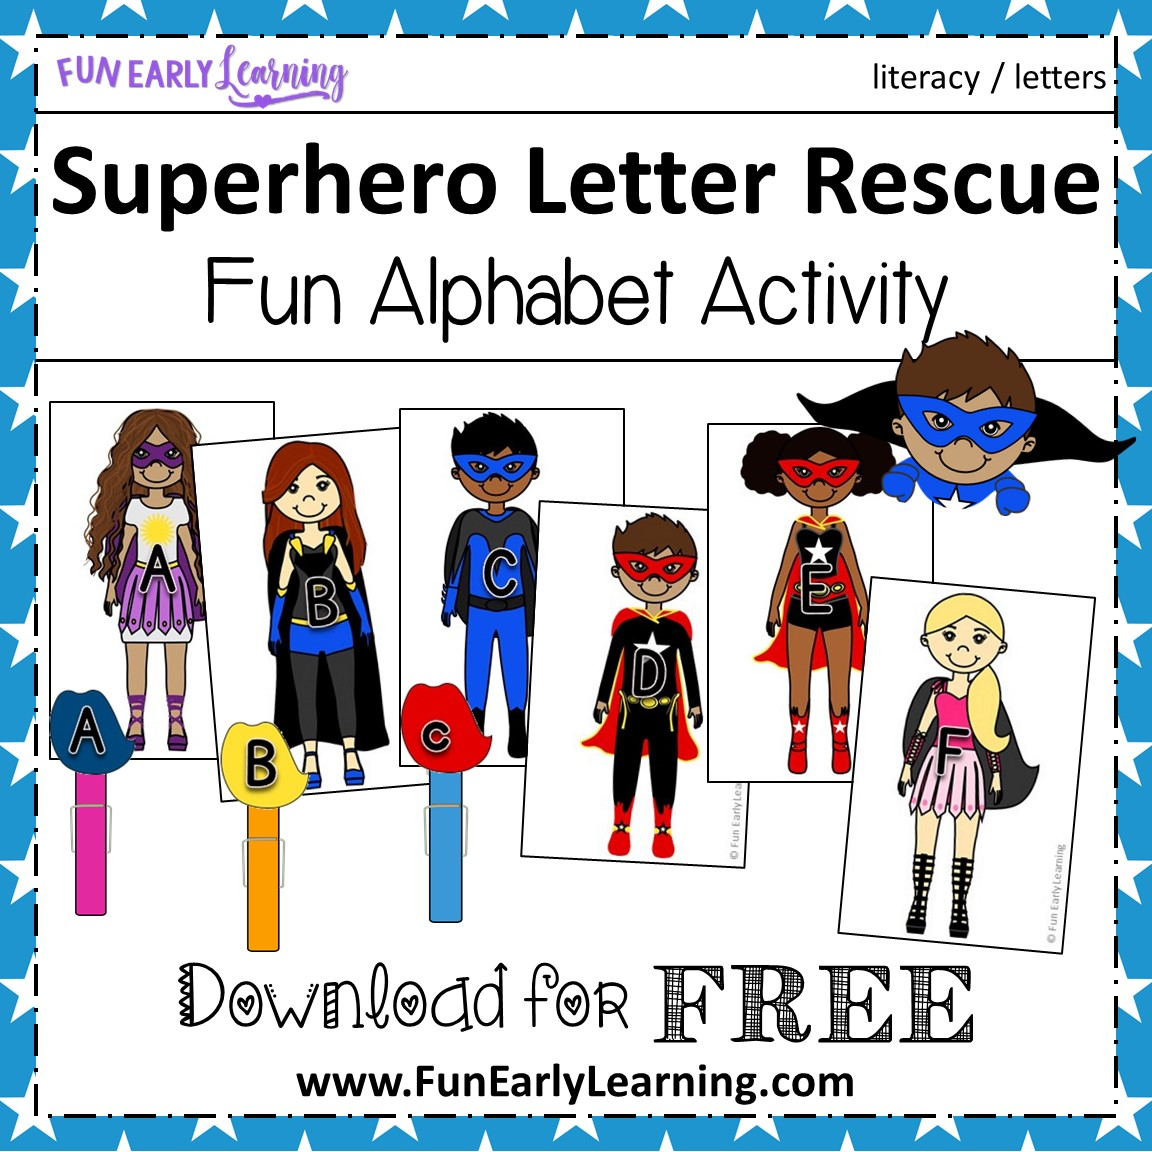 graphic about Superhero Letters Printable called Superhero Letter Rescue Alphabet Match - Pleasurable Free of charge Printable